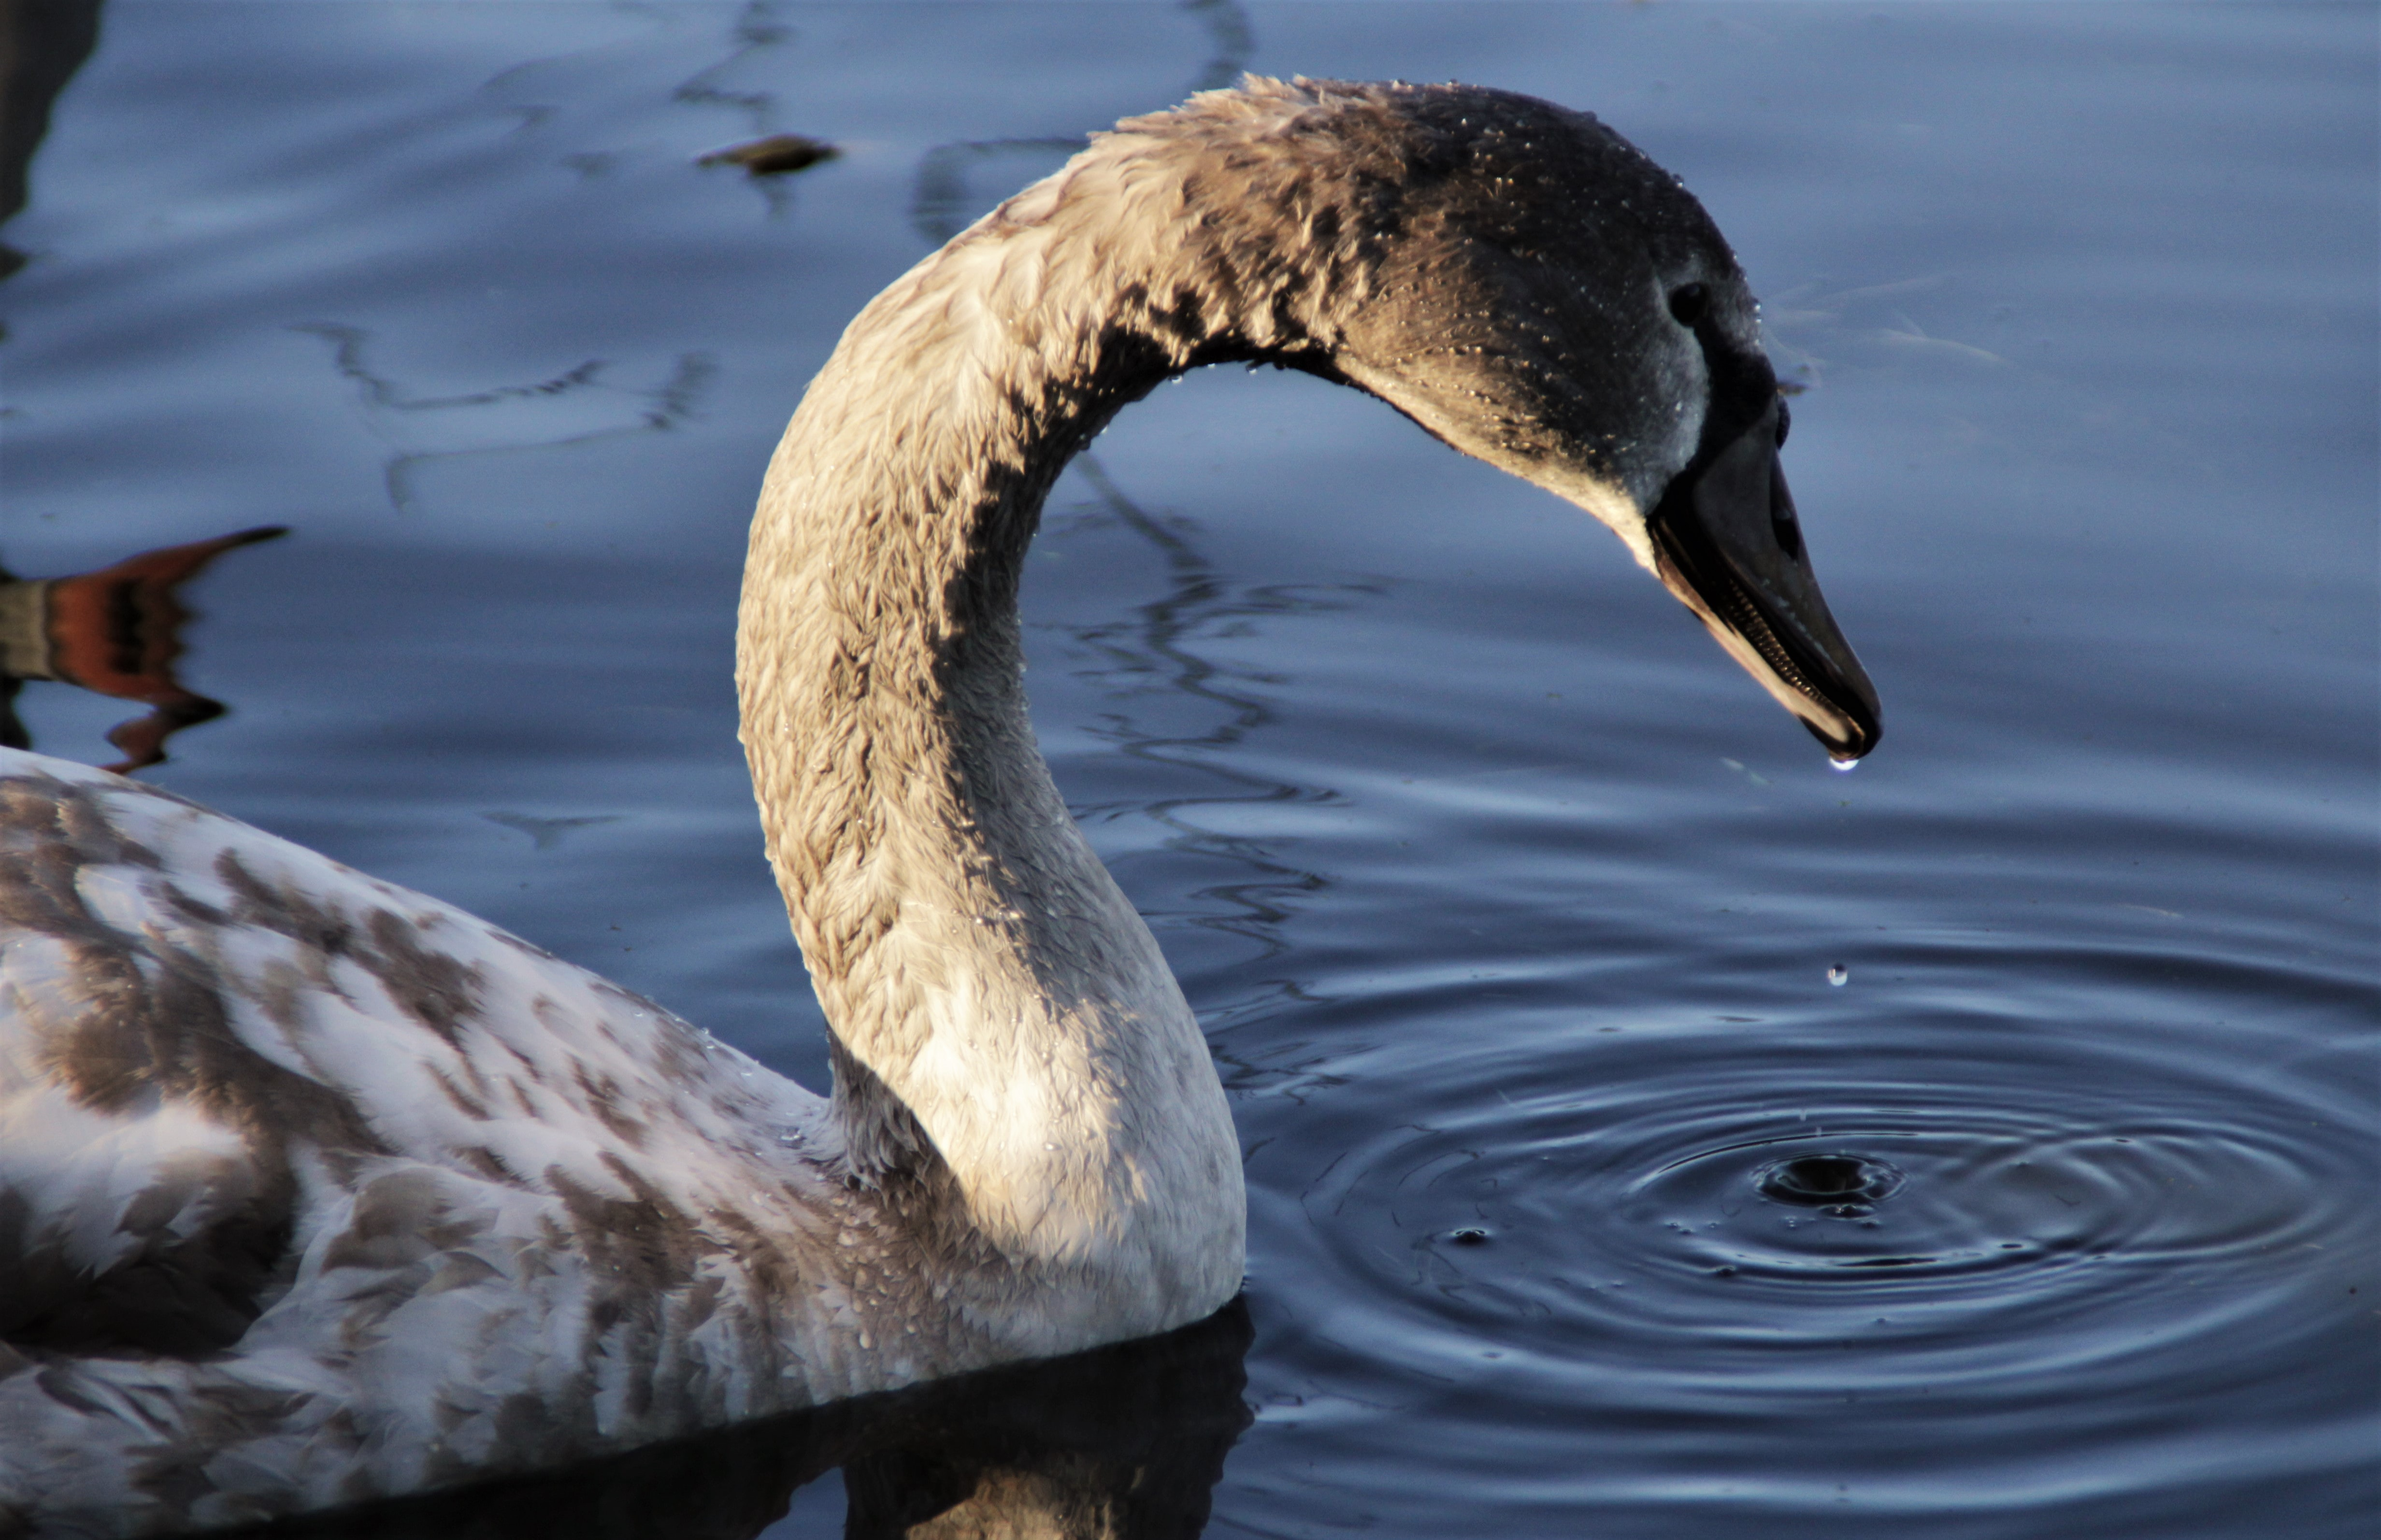 closeup photo of goose on body of water